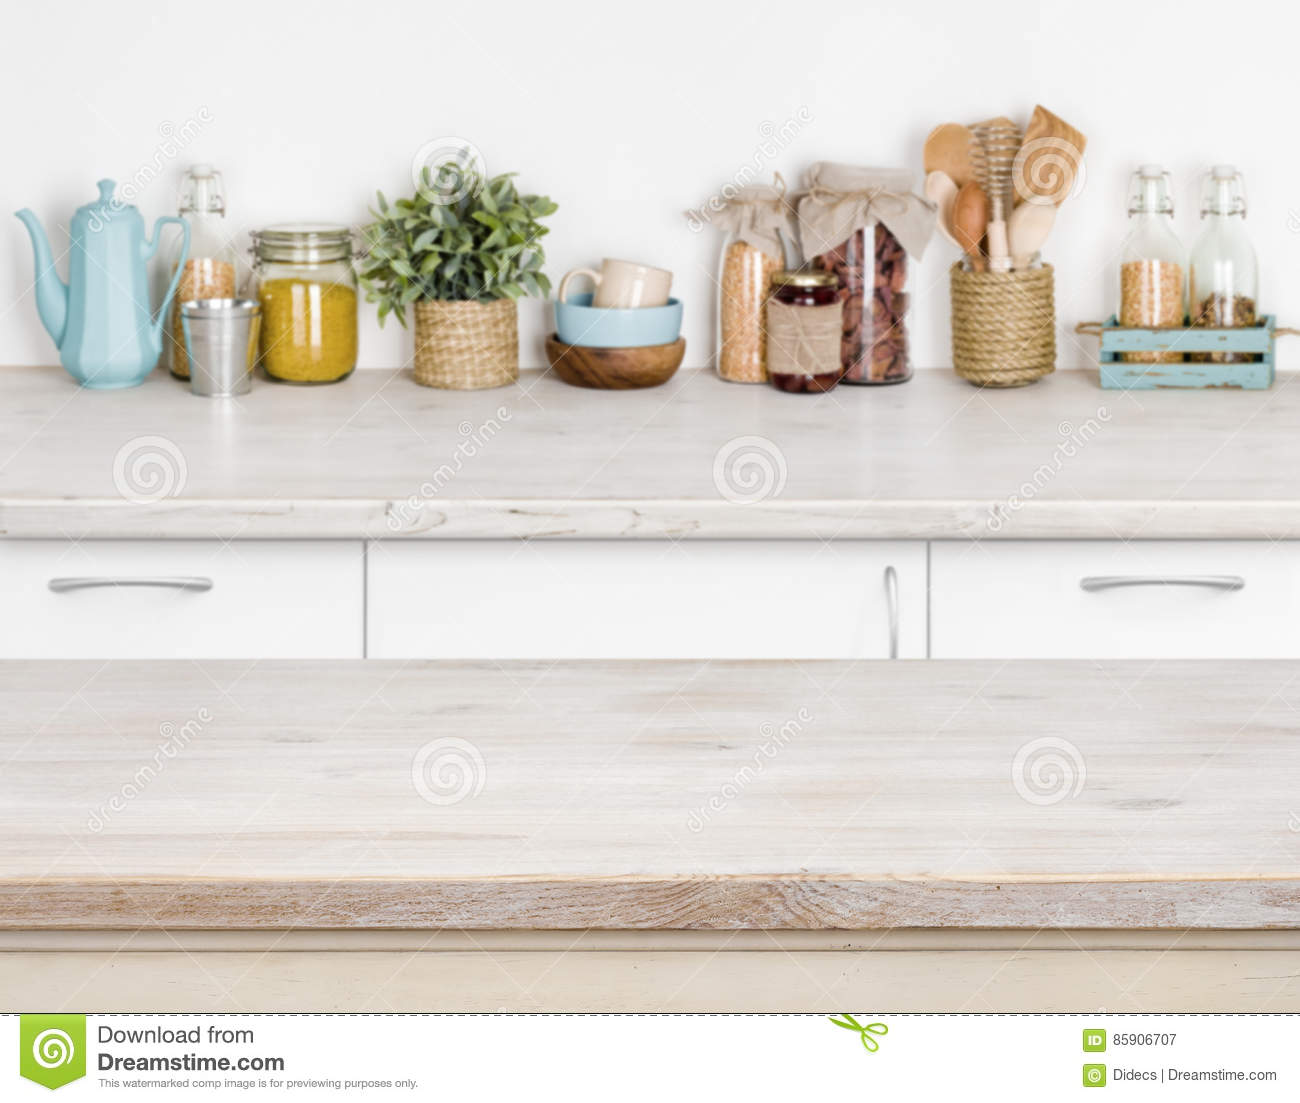 Wooden kitchen table over blurred furniture shelf with food ingredients